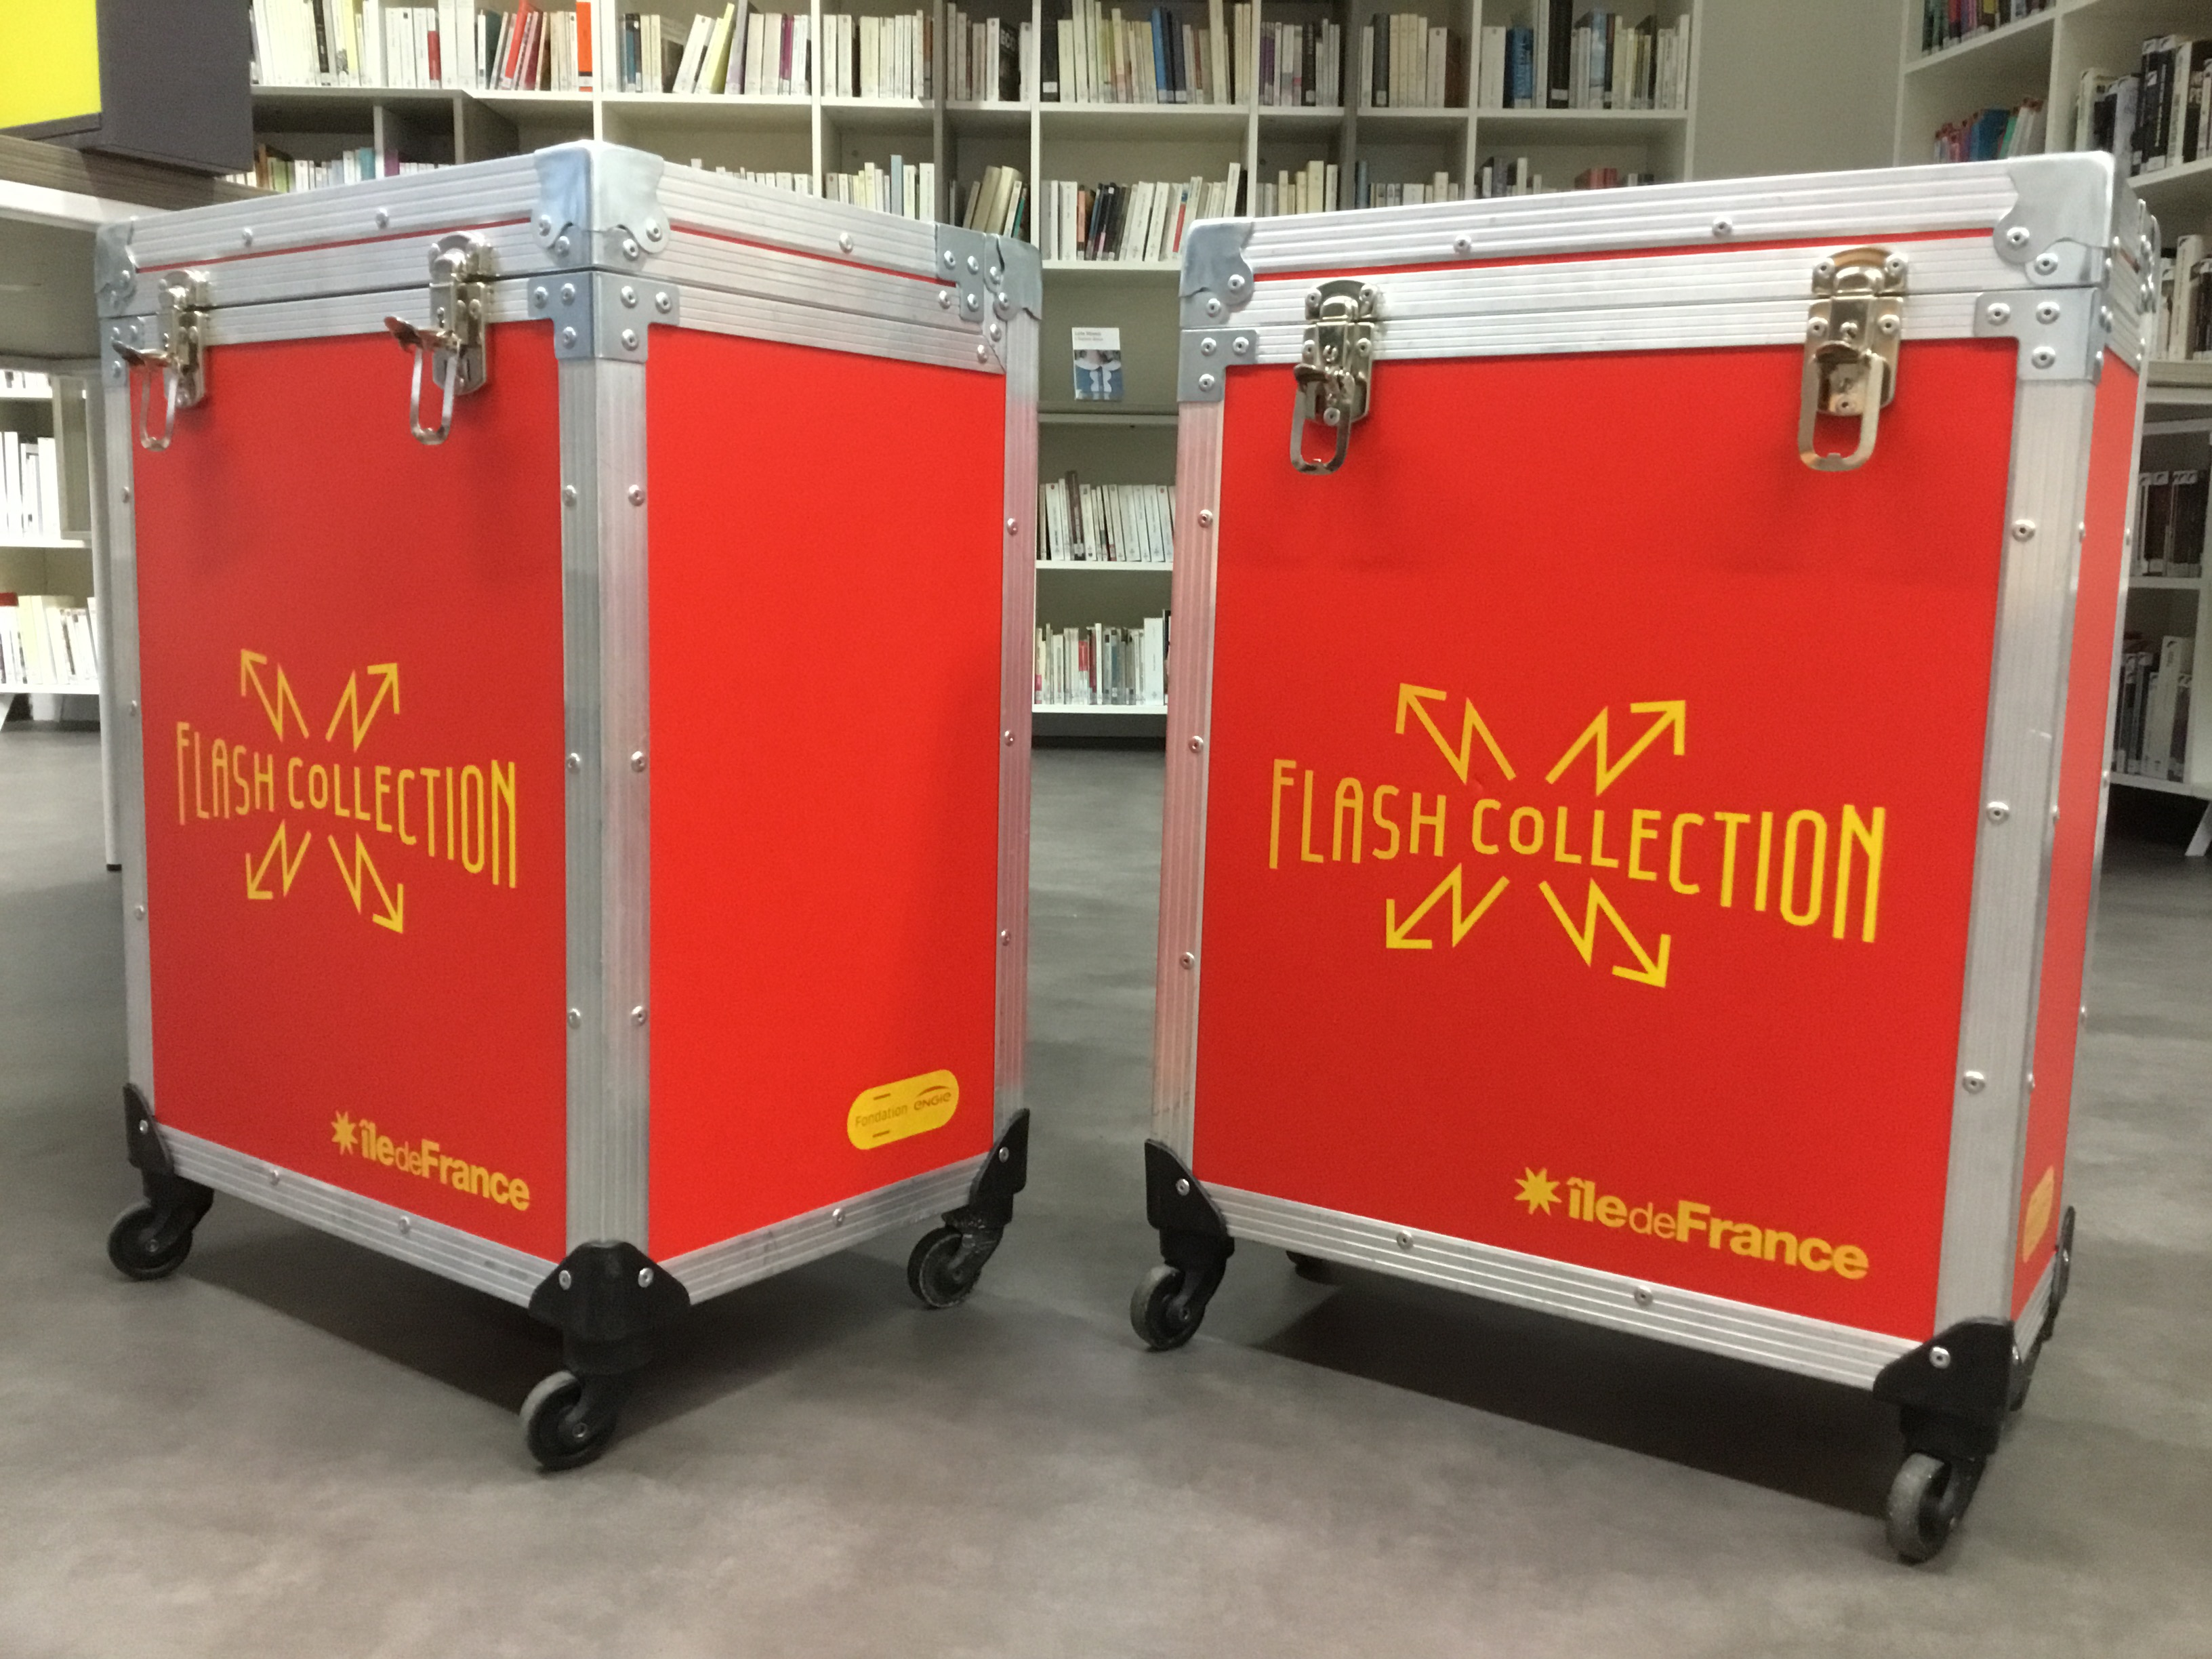 Visuel : Flash collection au CDI du lycée